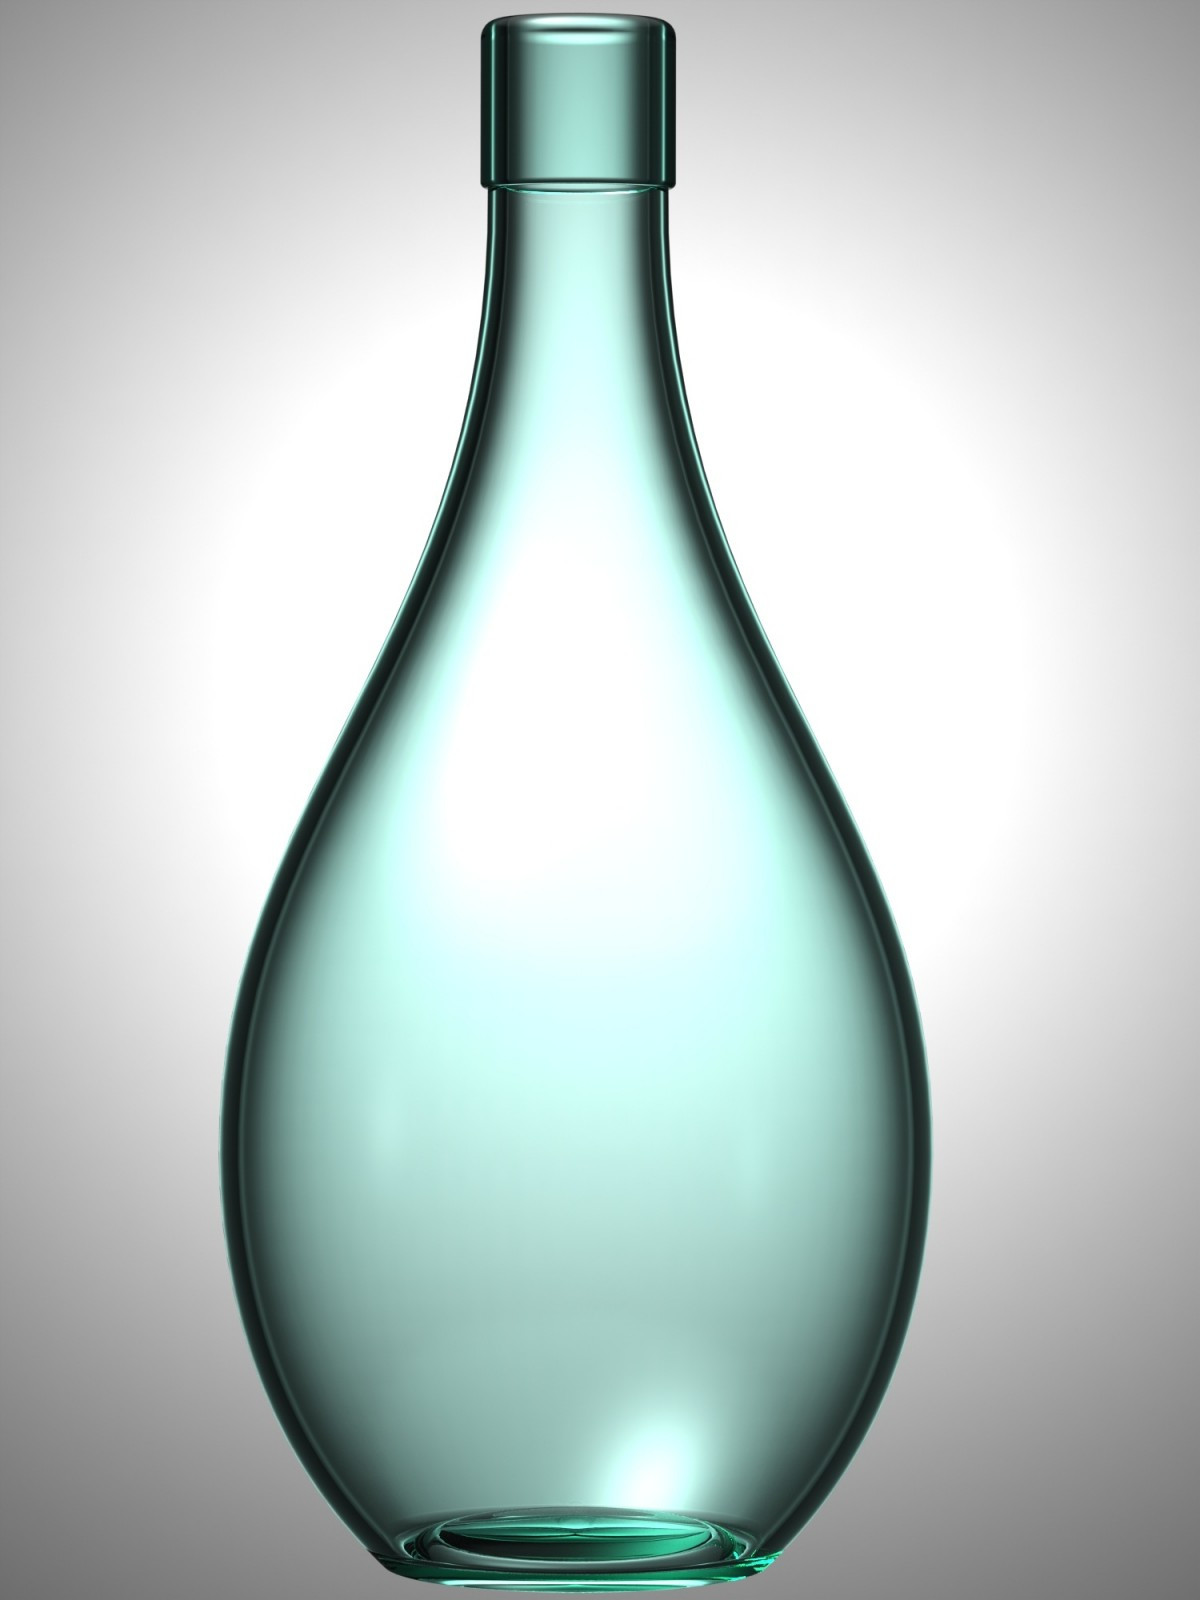 Blue Bubble Glass Vase Of Free Images Vase Material Glass Bottle Cobalt Blue Drinkware Inside Glass Vase Green Bottle Wine Bottle Storage